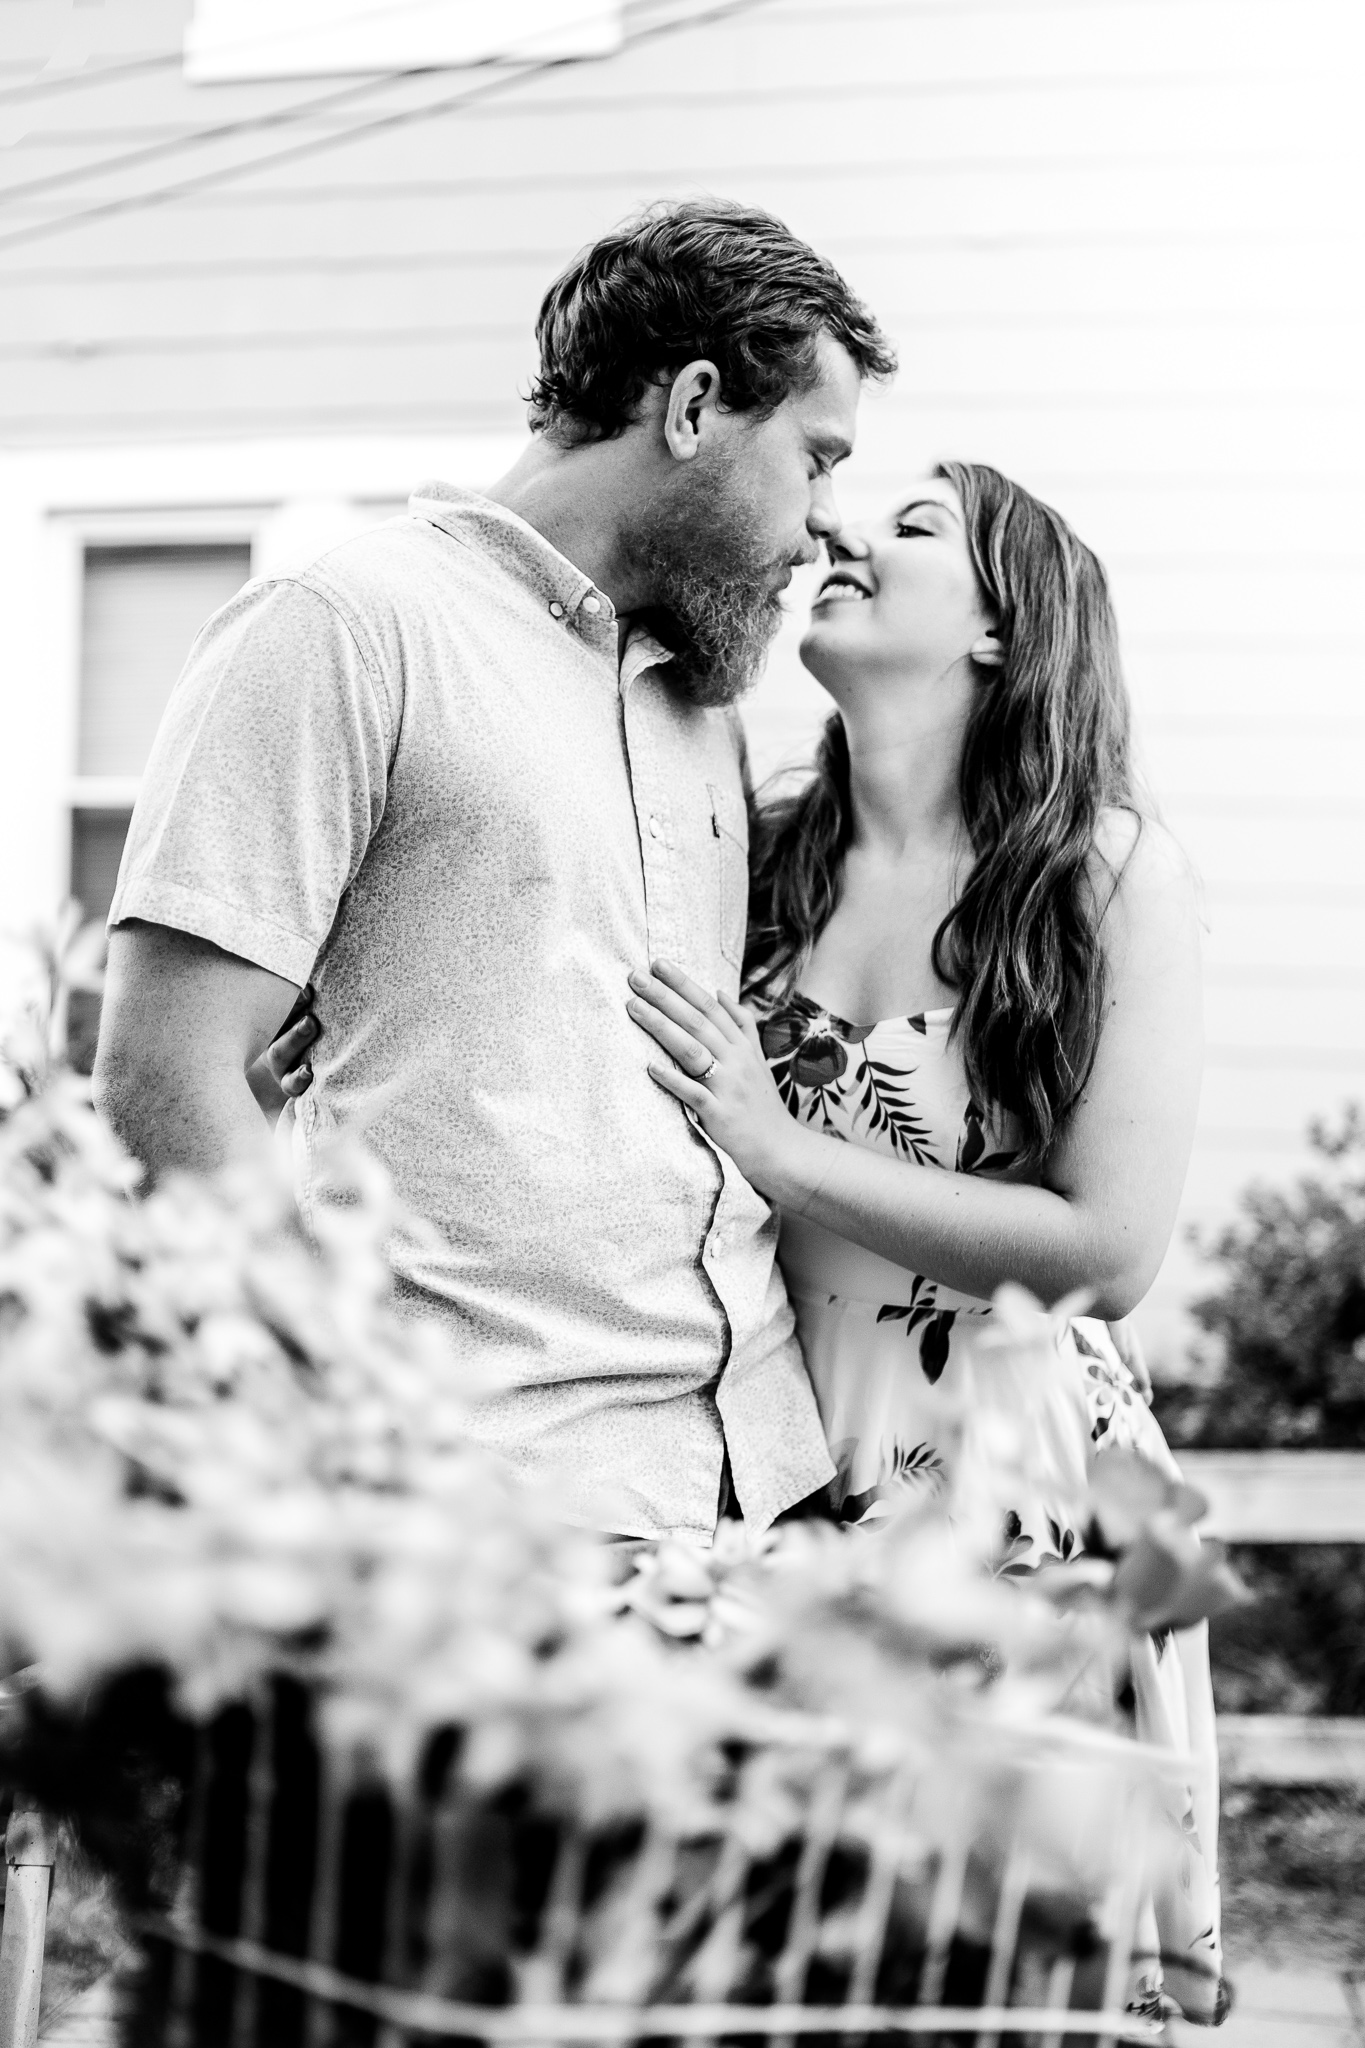 An engaged couple leans in for a kiss during their summer sunset engagement session in Historic Occoquan, Northern Virginia